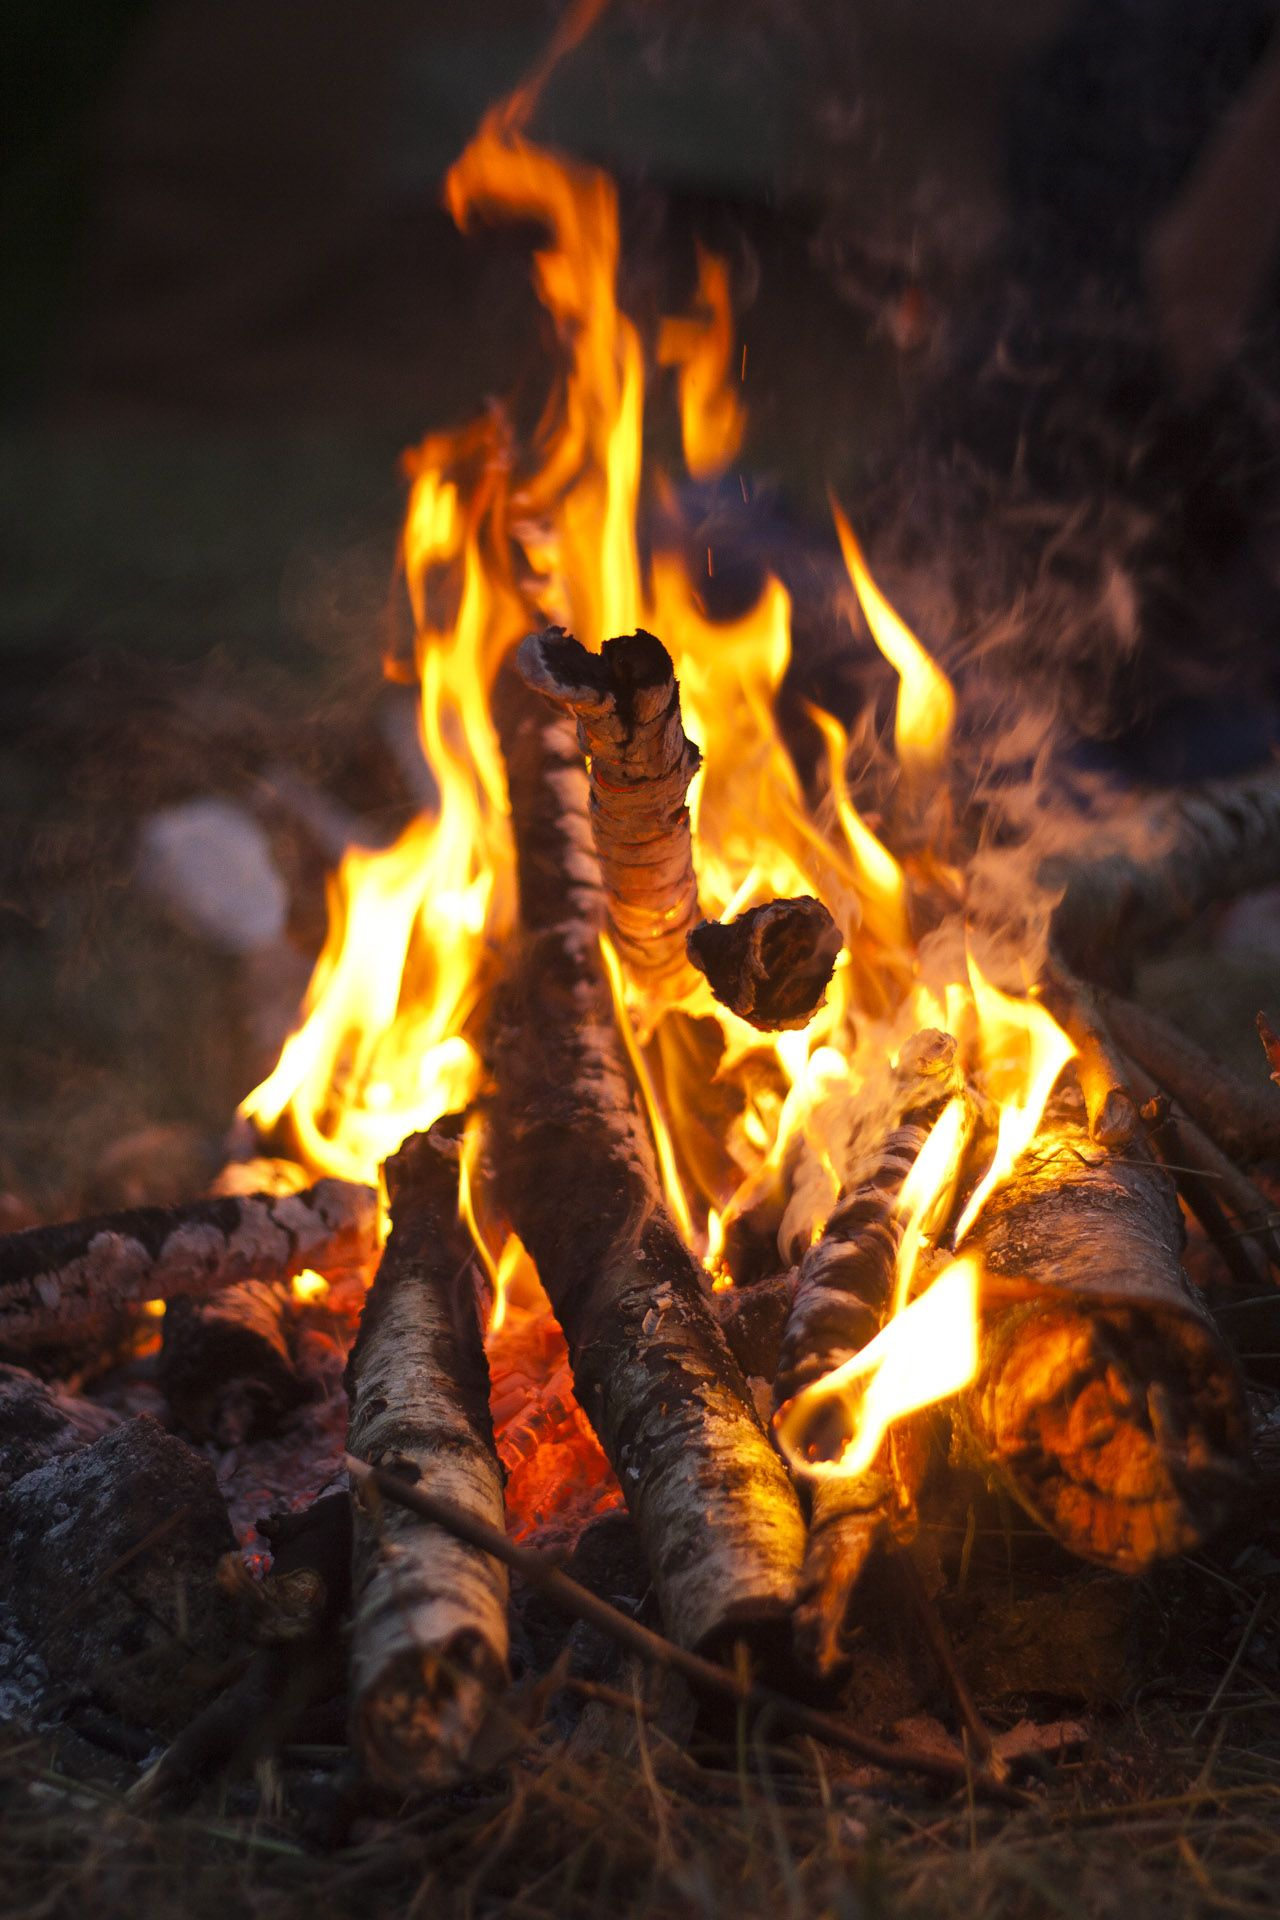 Love a good bonfire to sit by at night.  Peaceful moments....